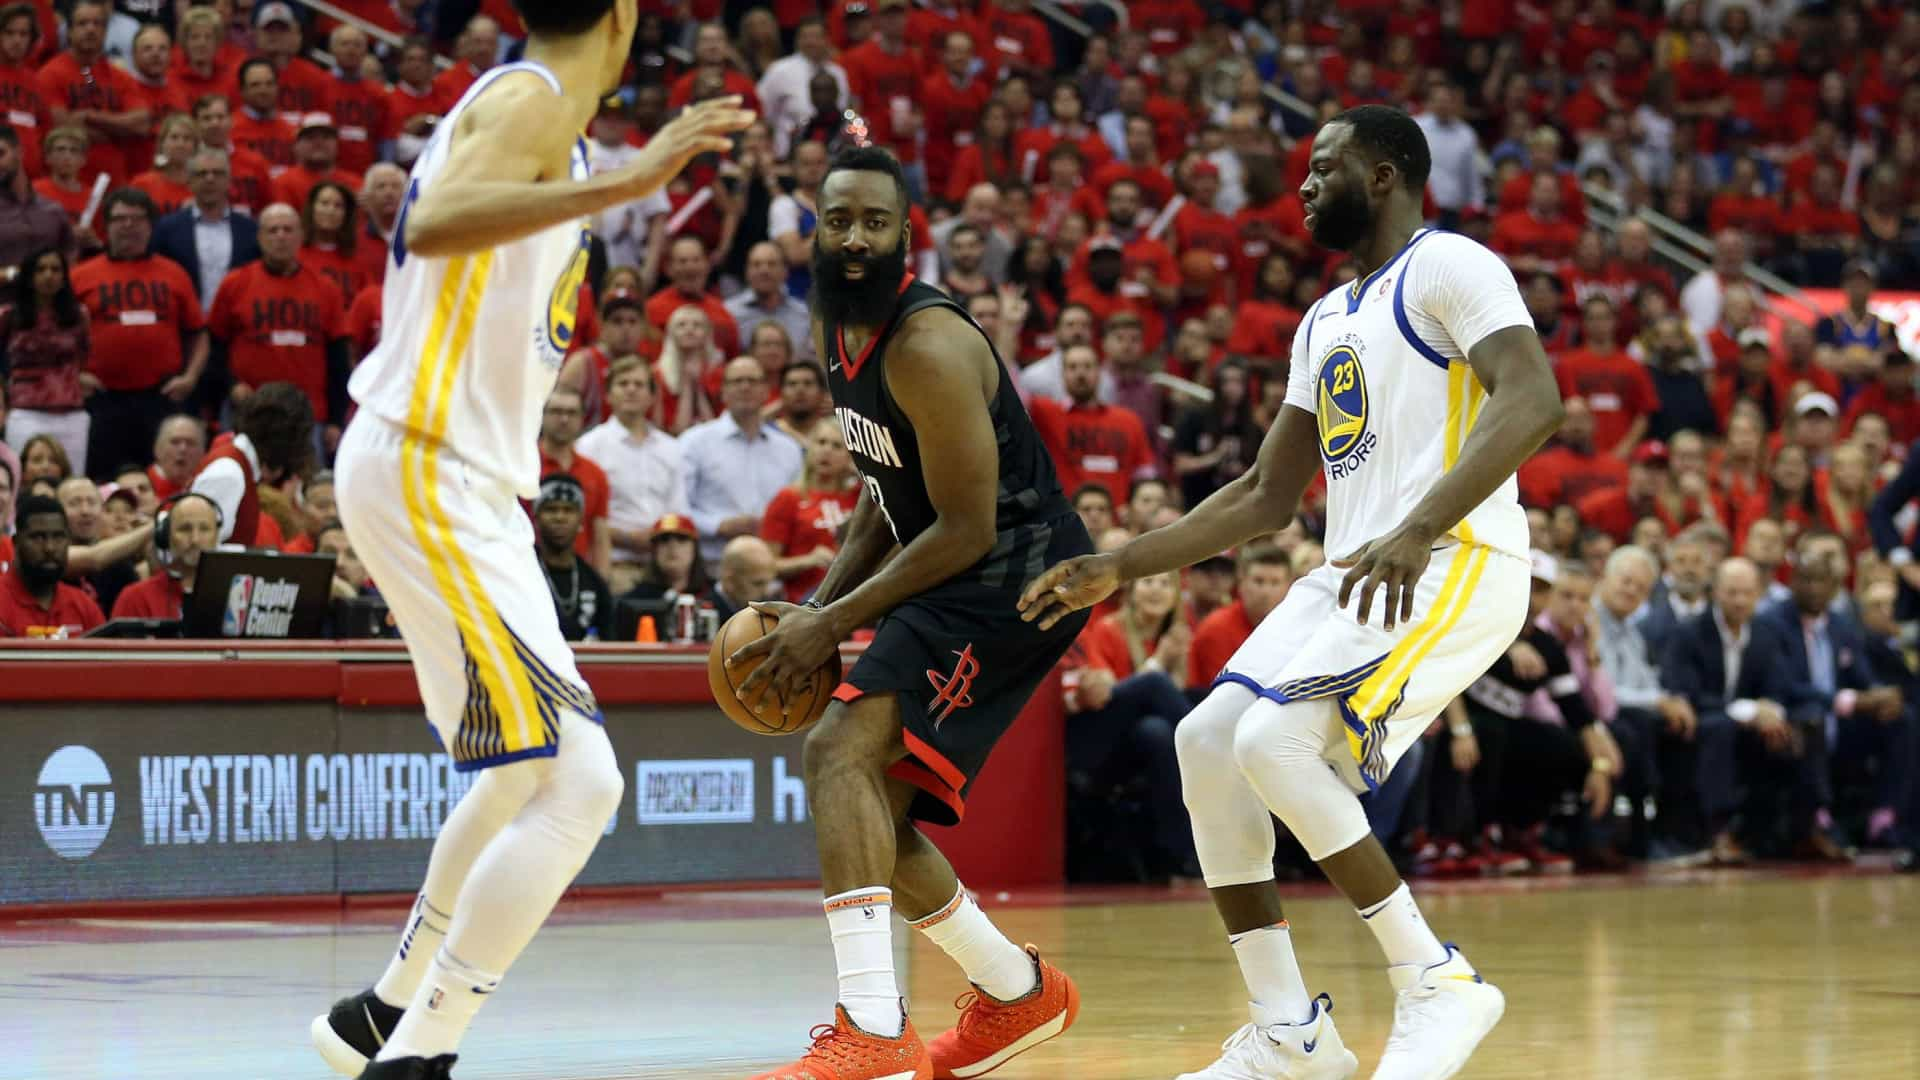 Rockets batem Warriors e empatam final da Conferência Oeste